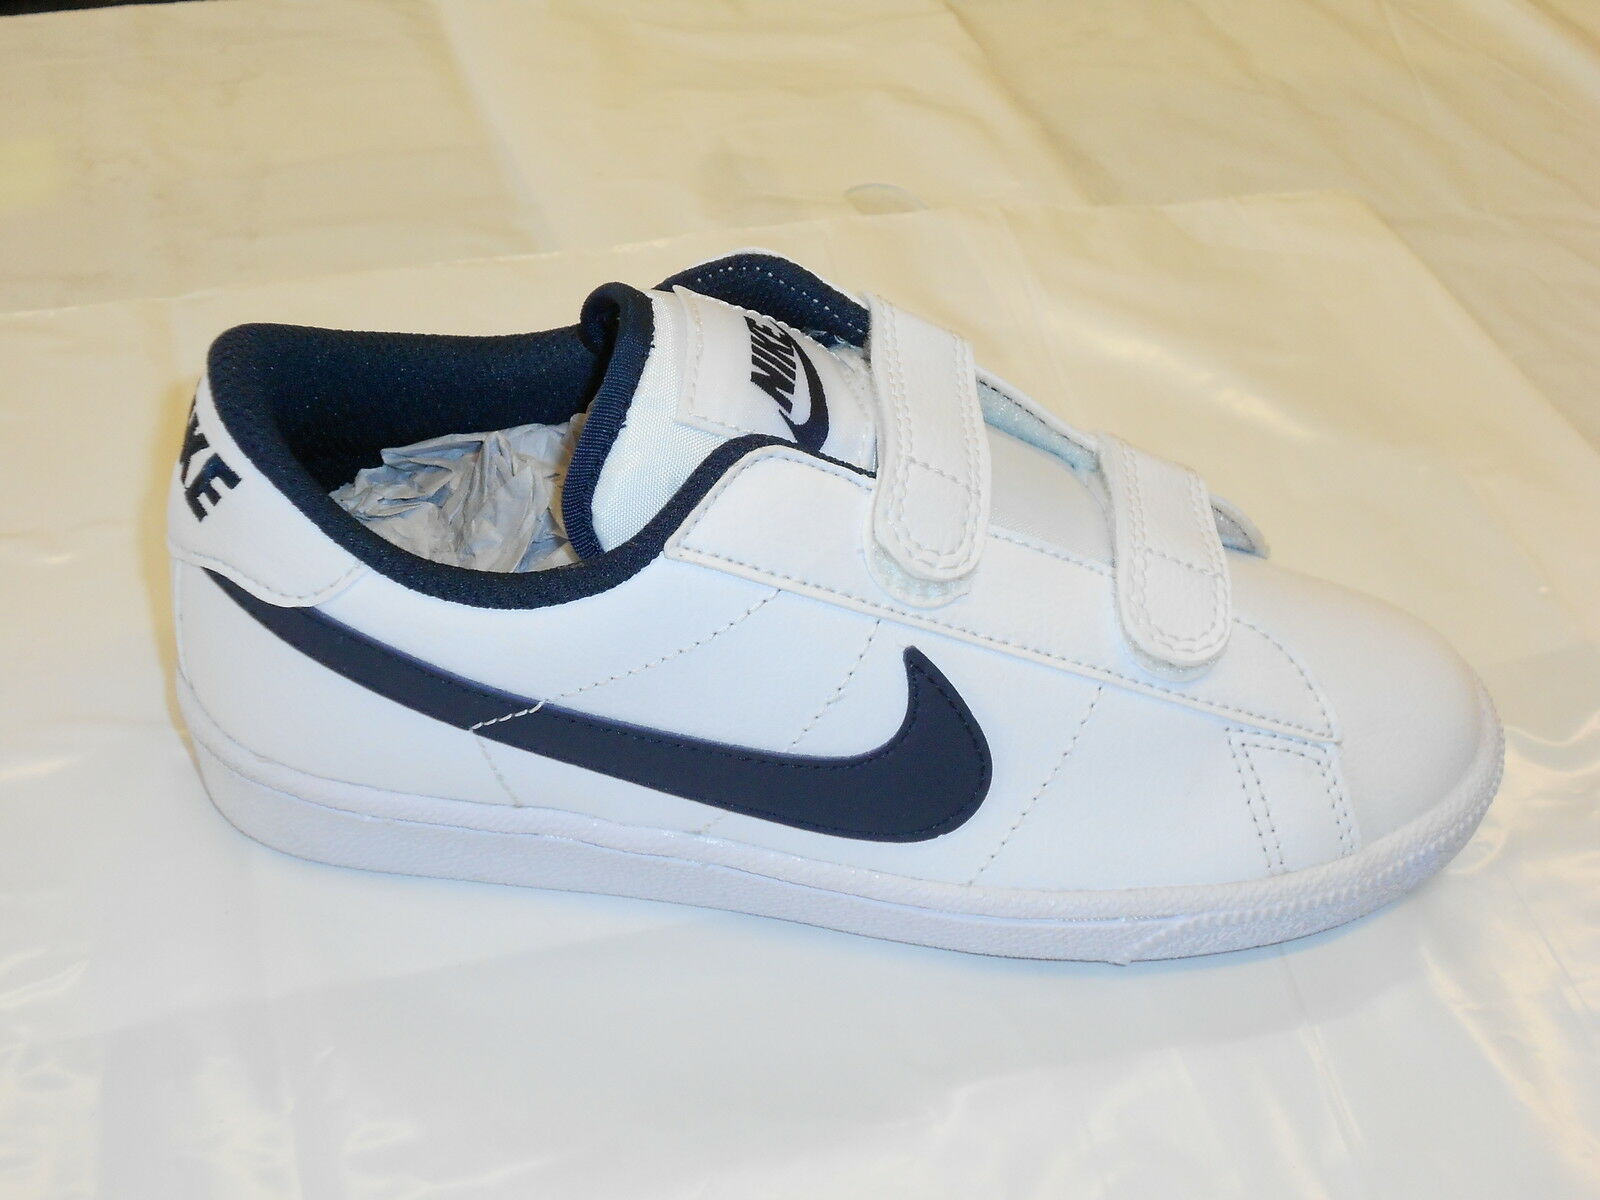 Infant BOYS  Leather Trainers  719451 102 Nike Tennis classic TDV